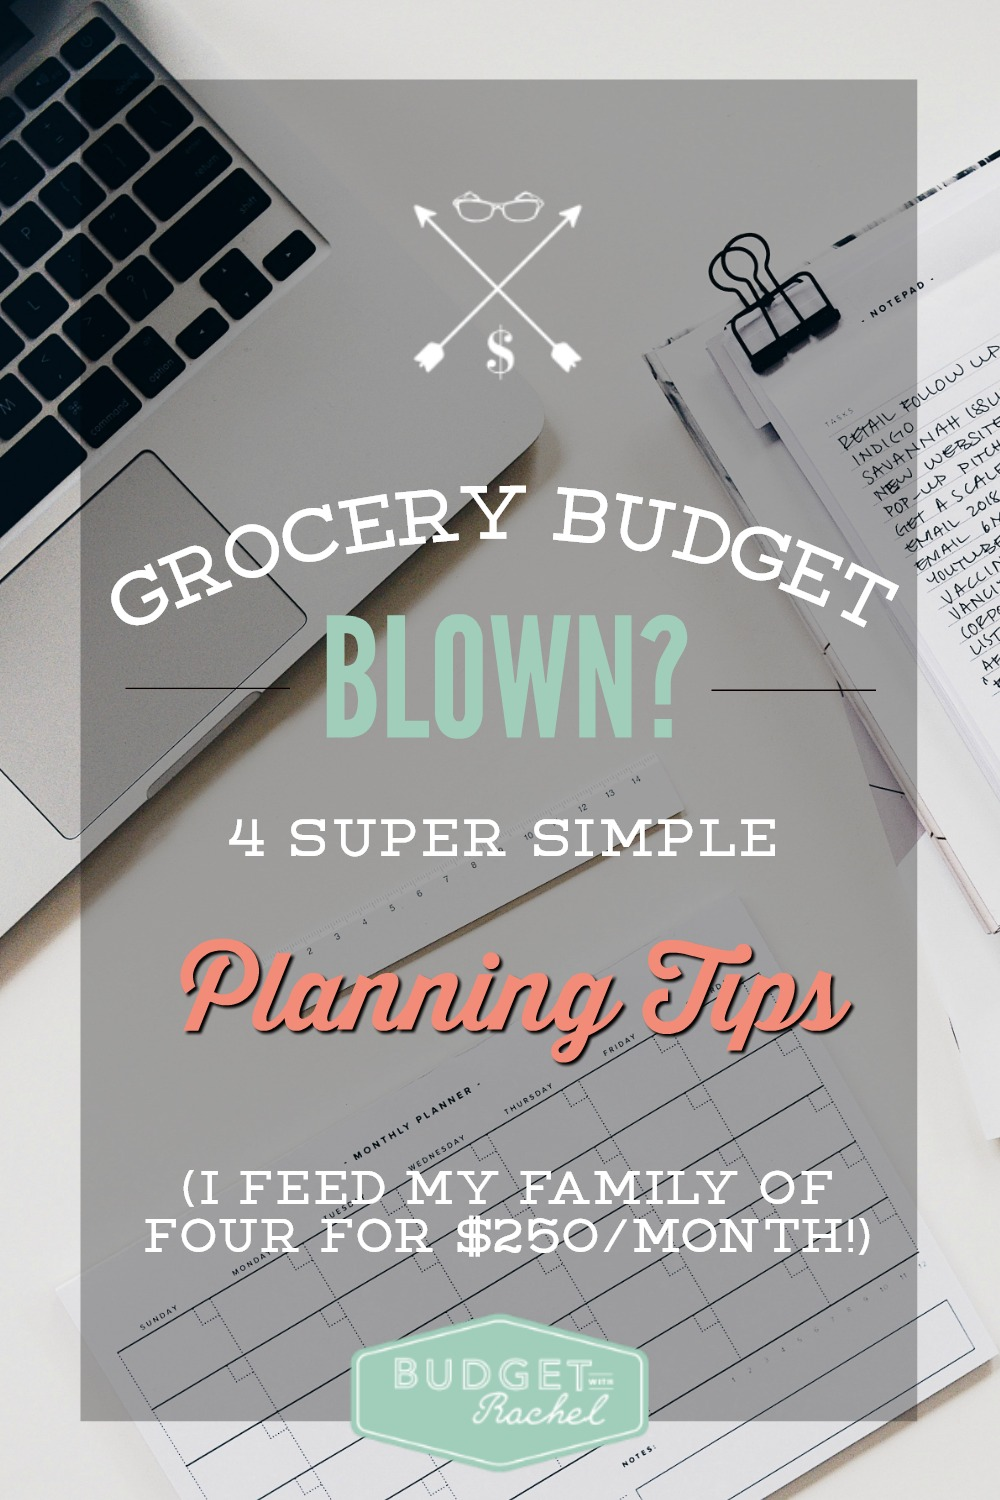 Stop Blowing Your Monthly Grocery Budget with These Simple Planning Tips. These grocery planning tips are awesome! So #1 has to be my favorite that I never even thought to do. Even my husband thinks it's a good idea!! Since starting to do two of these things, I have saved $100/month on my grocery budget.